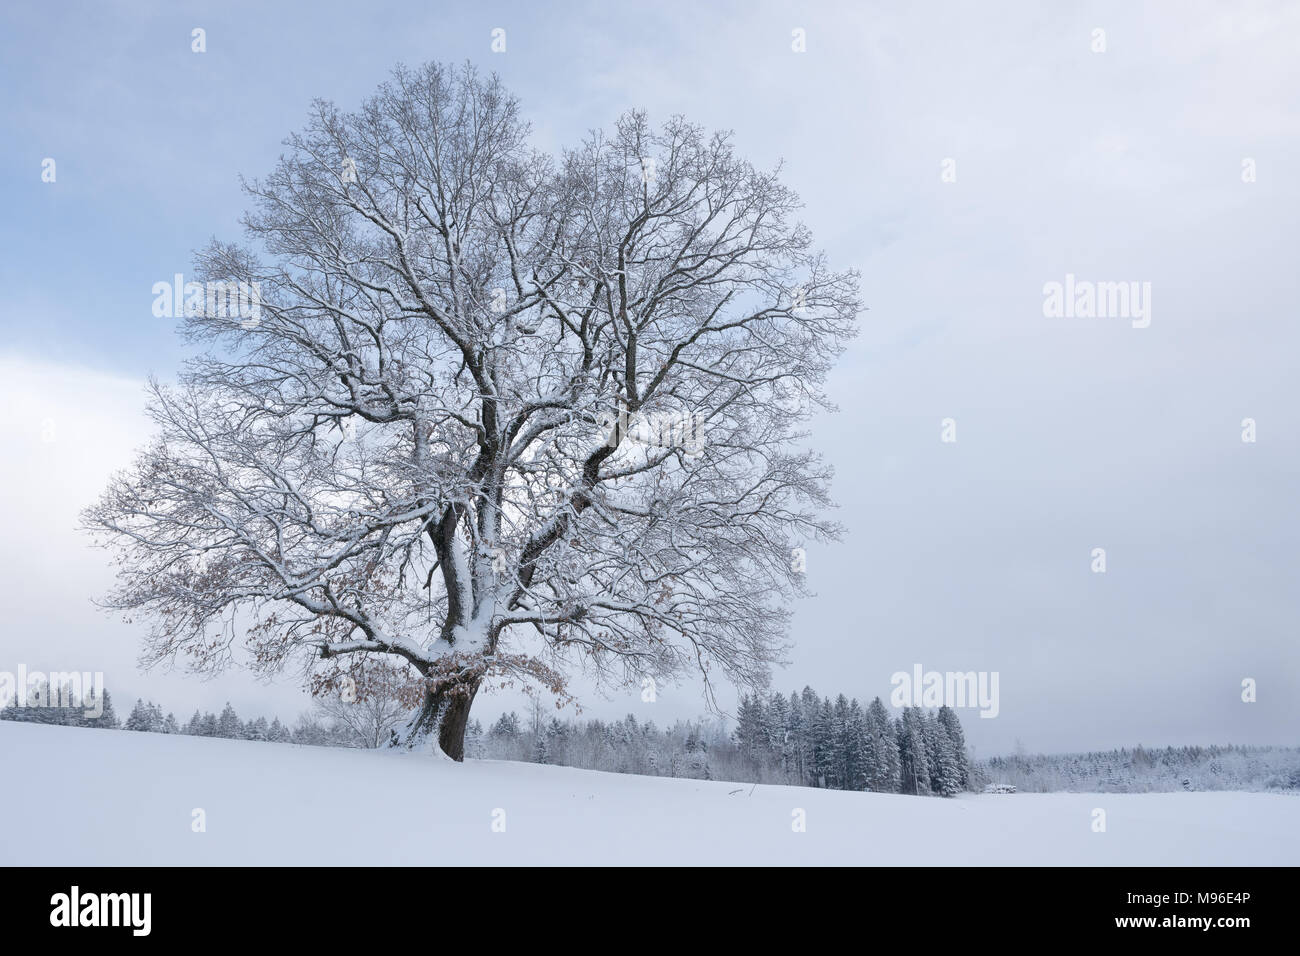 Snowy tree after snowstorm Stock Photo